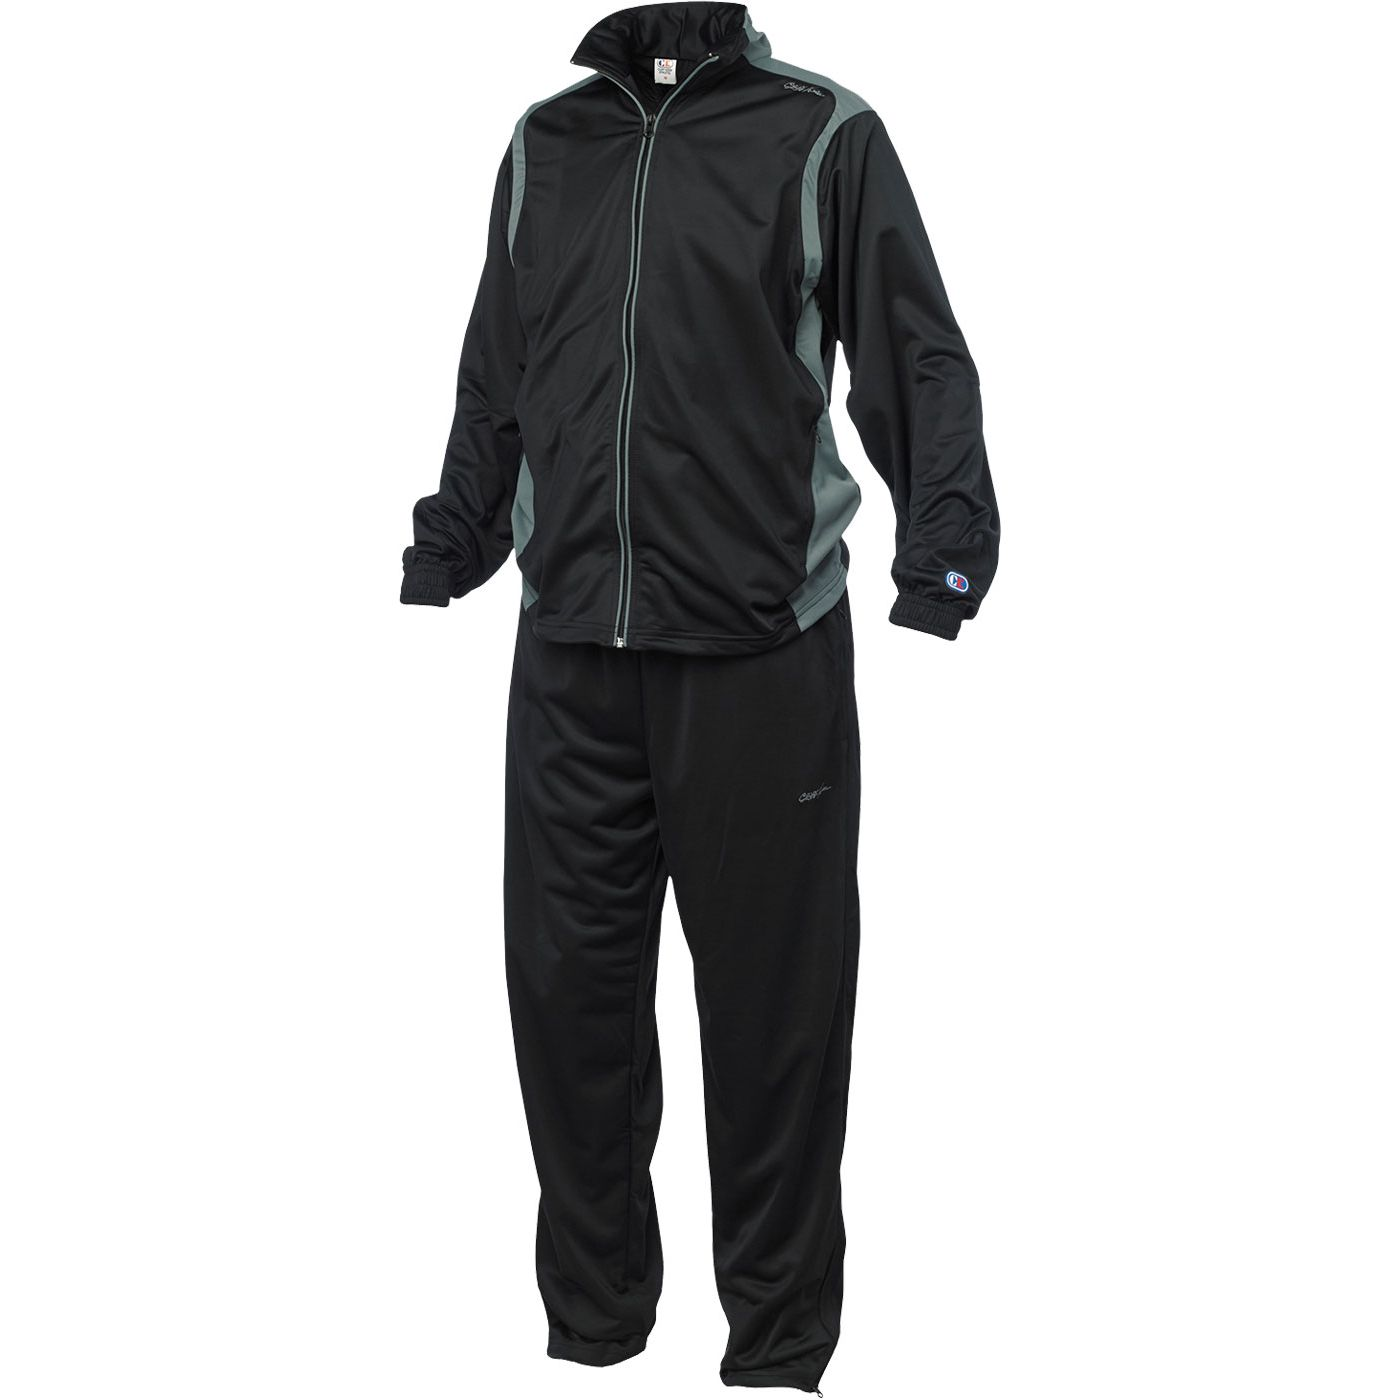 Cliff Keen All American Tricot Wrestling Warm Up Suit